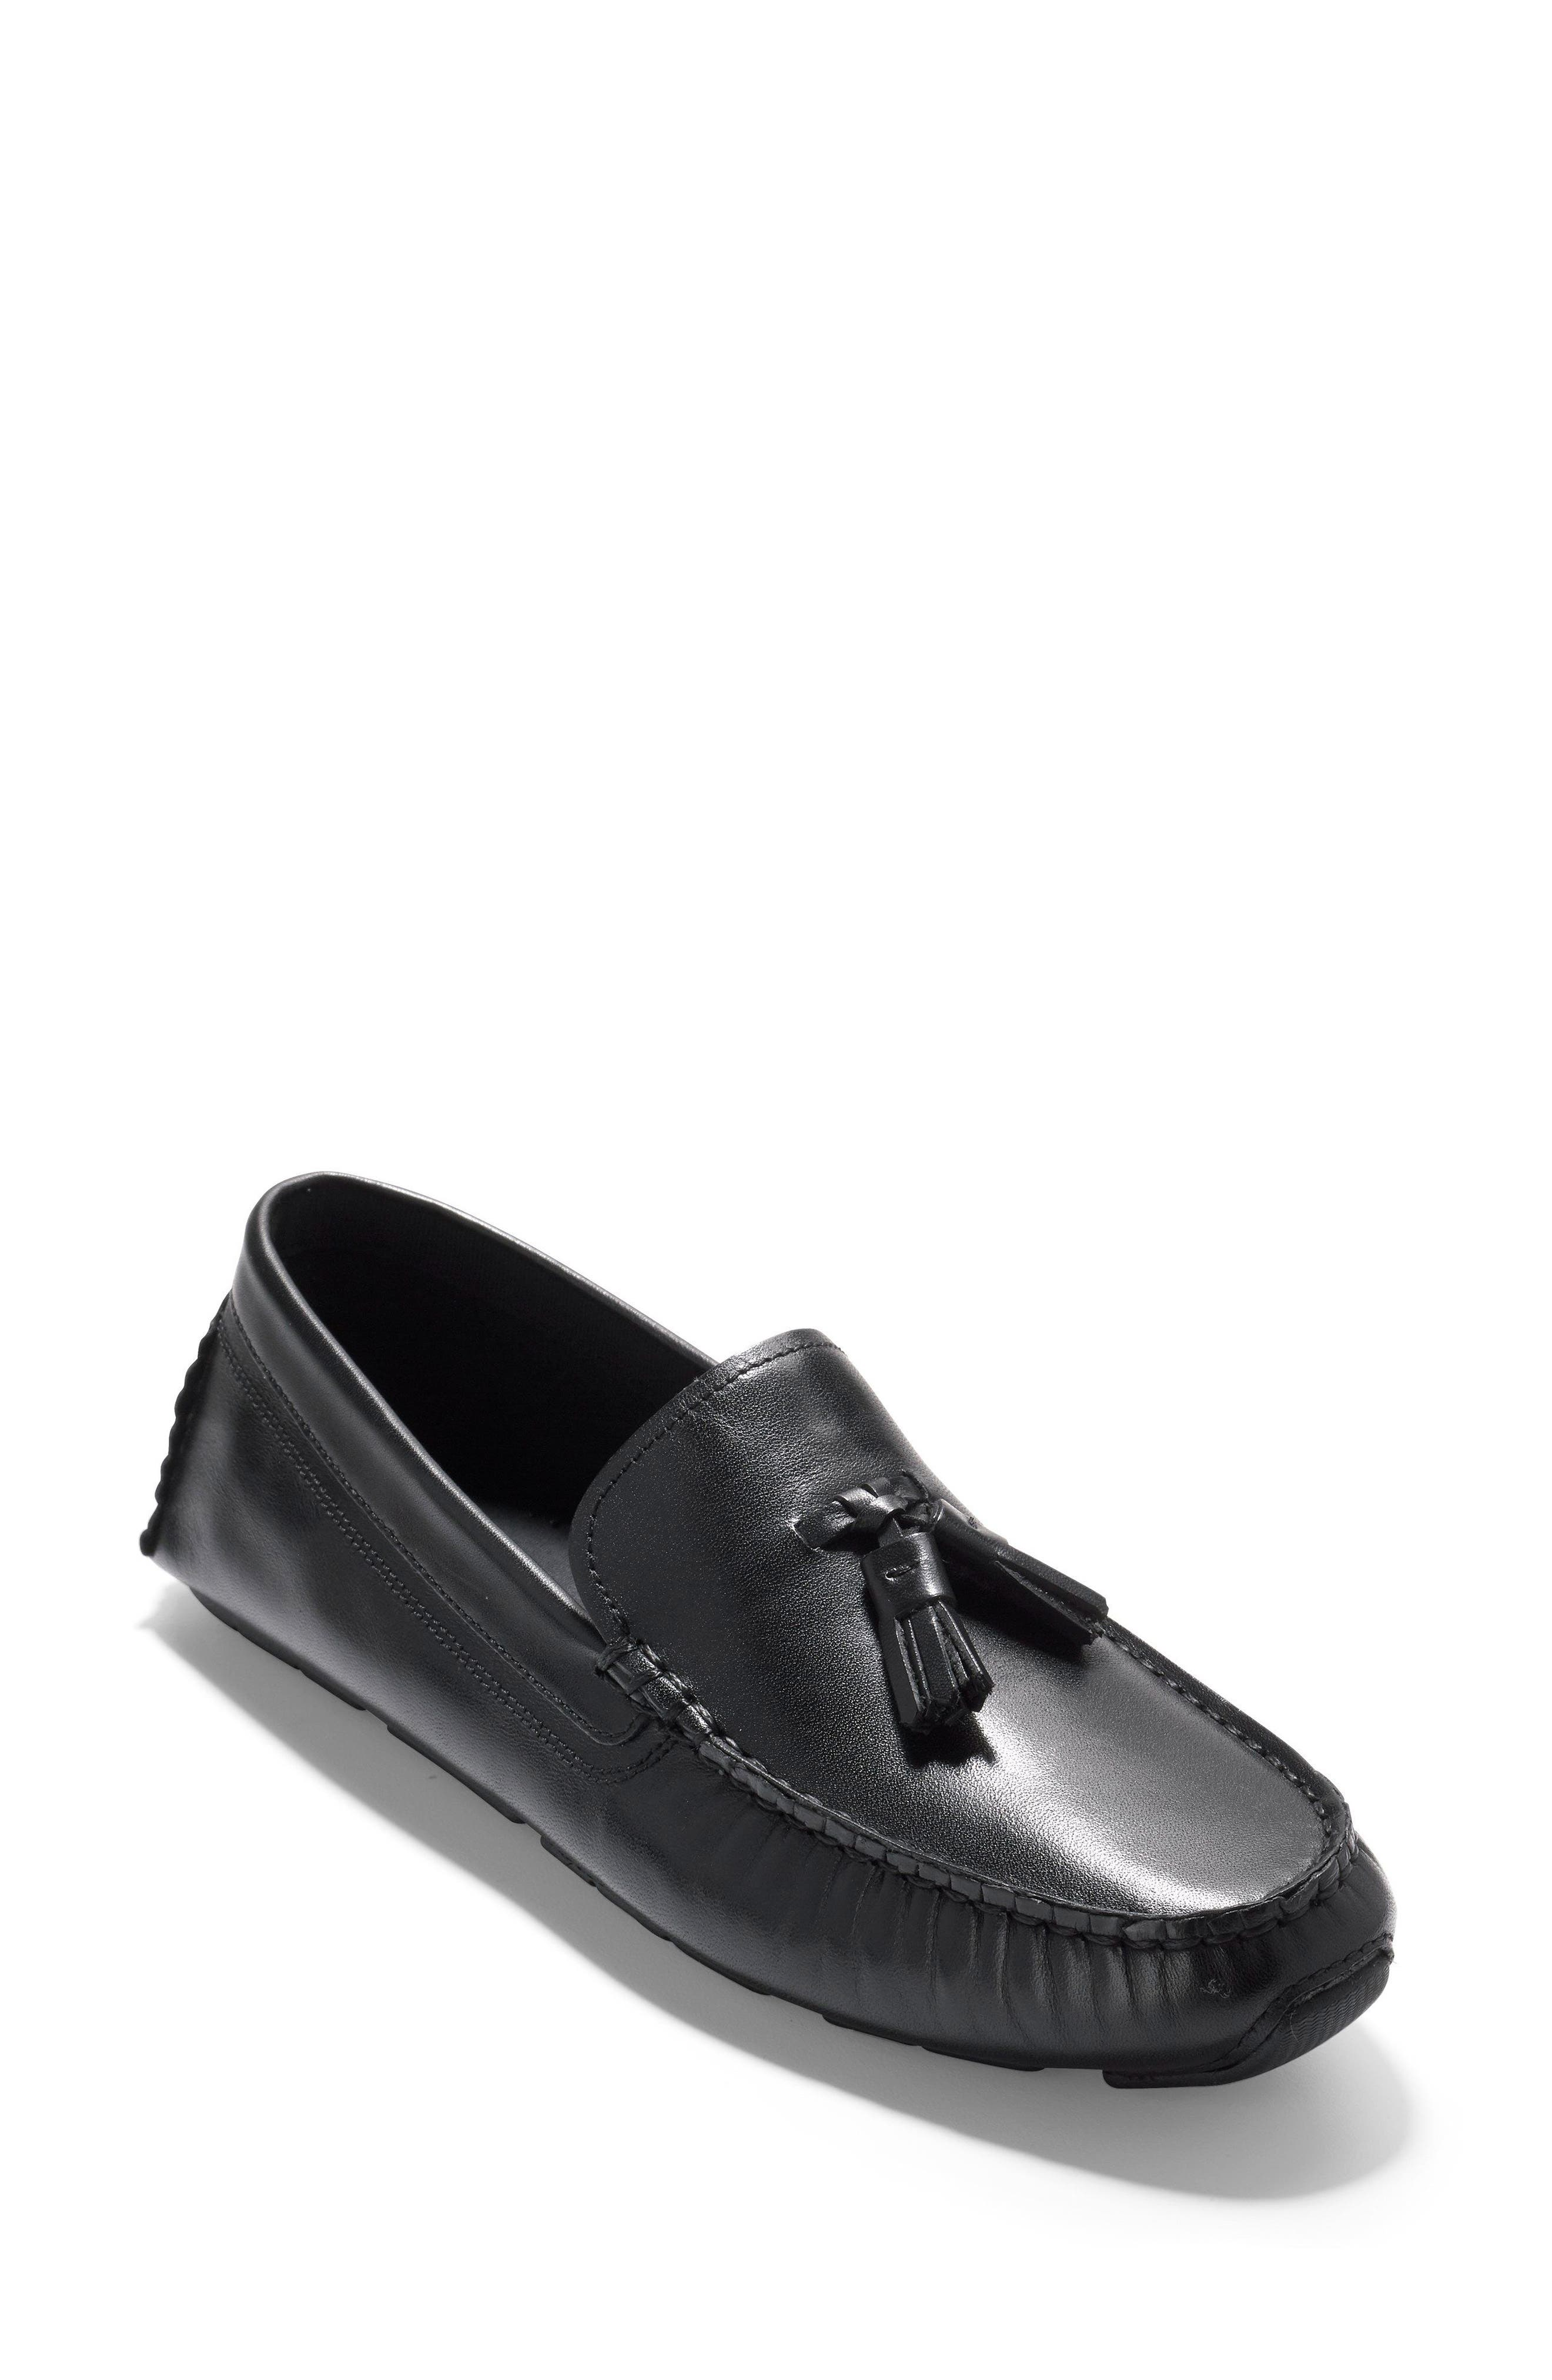 Rodeo Tassel Driving Loafer,                         Main,                         color, 001